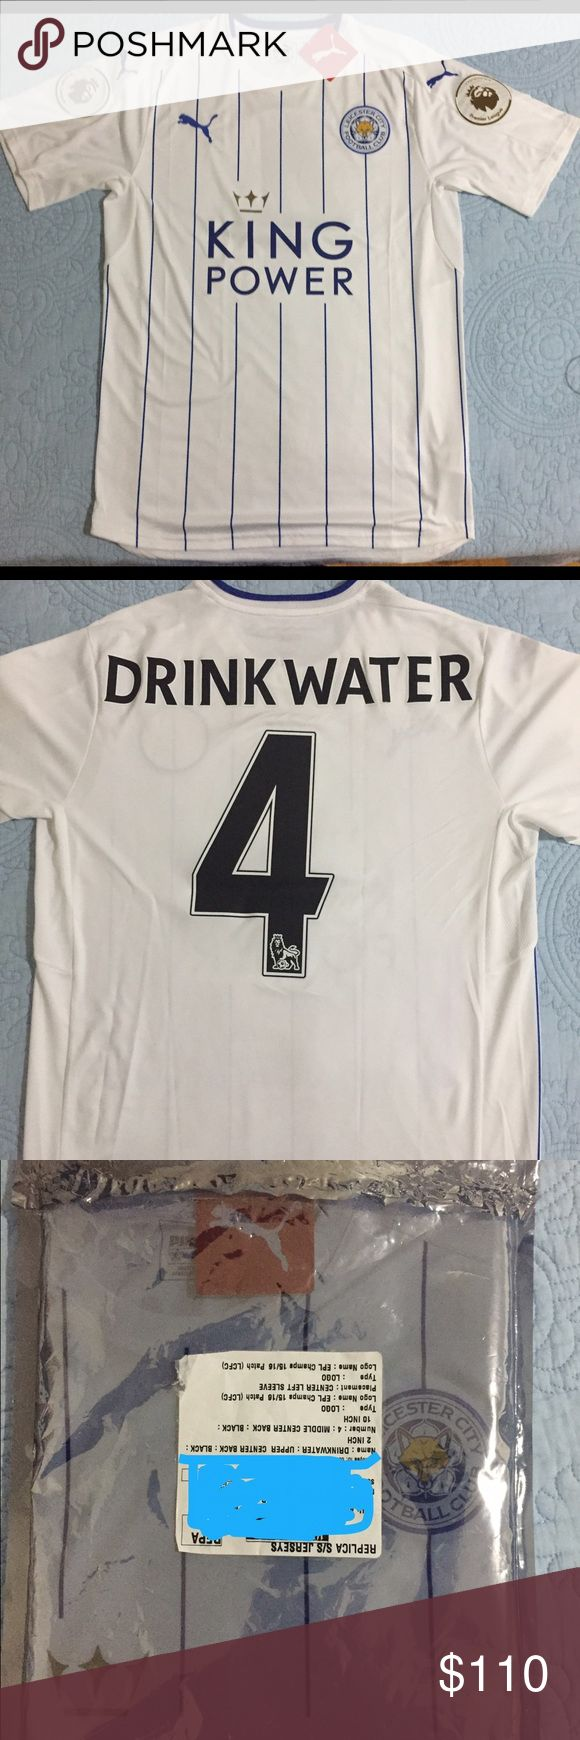 Brand new. Leicester City third kit. Jersey comes with tag and name: Drinkwater number: 4. Puma Shirts